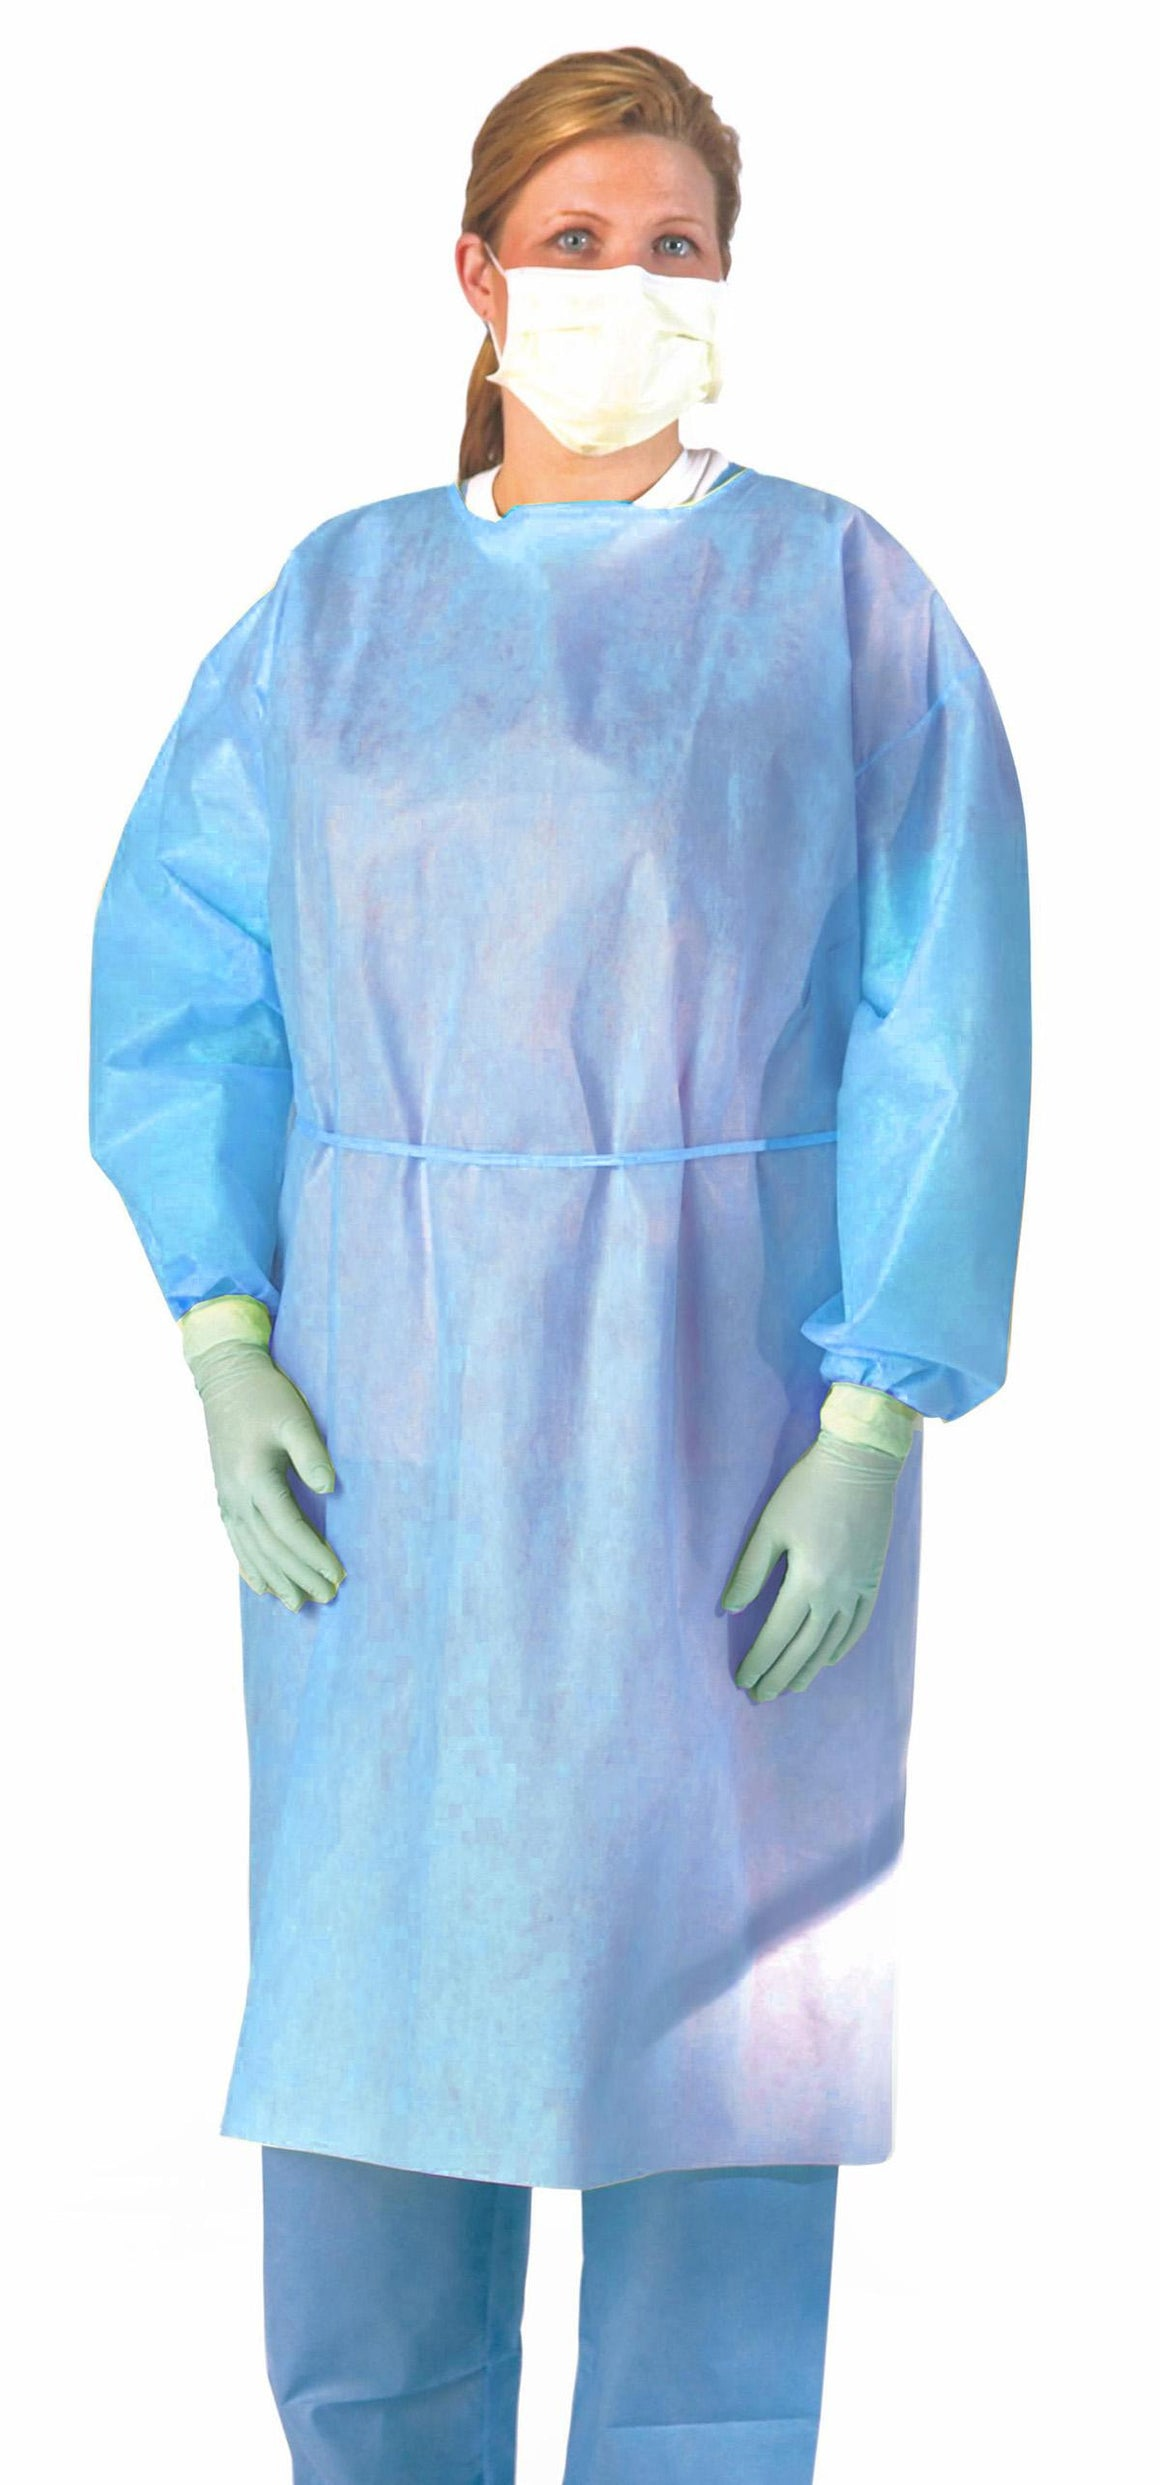 Medium Weight Multi-Ply Fluid Resistant Isolation Gown,Blue,Regular/Large, Case